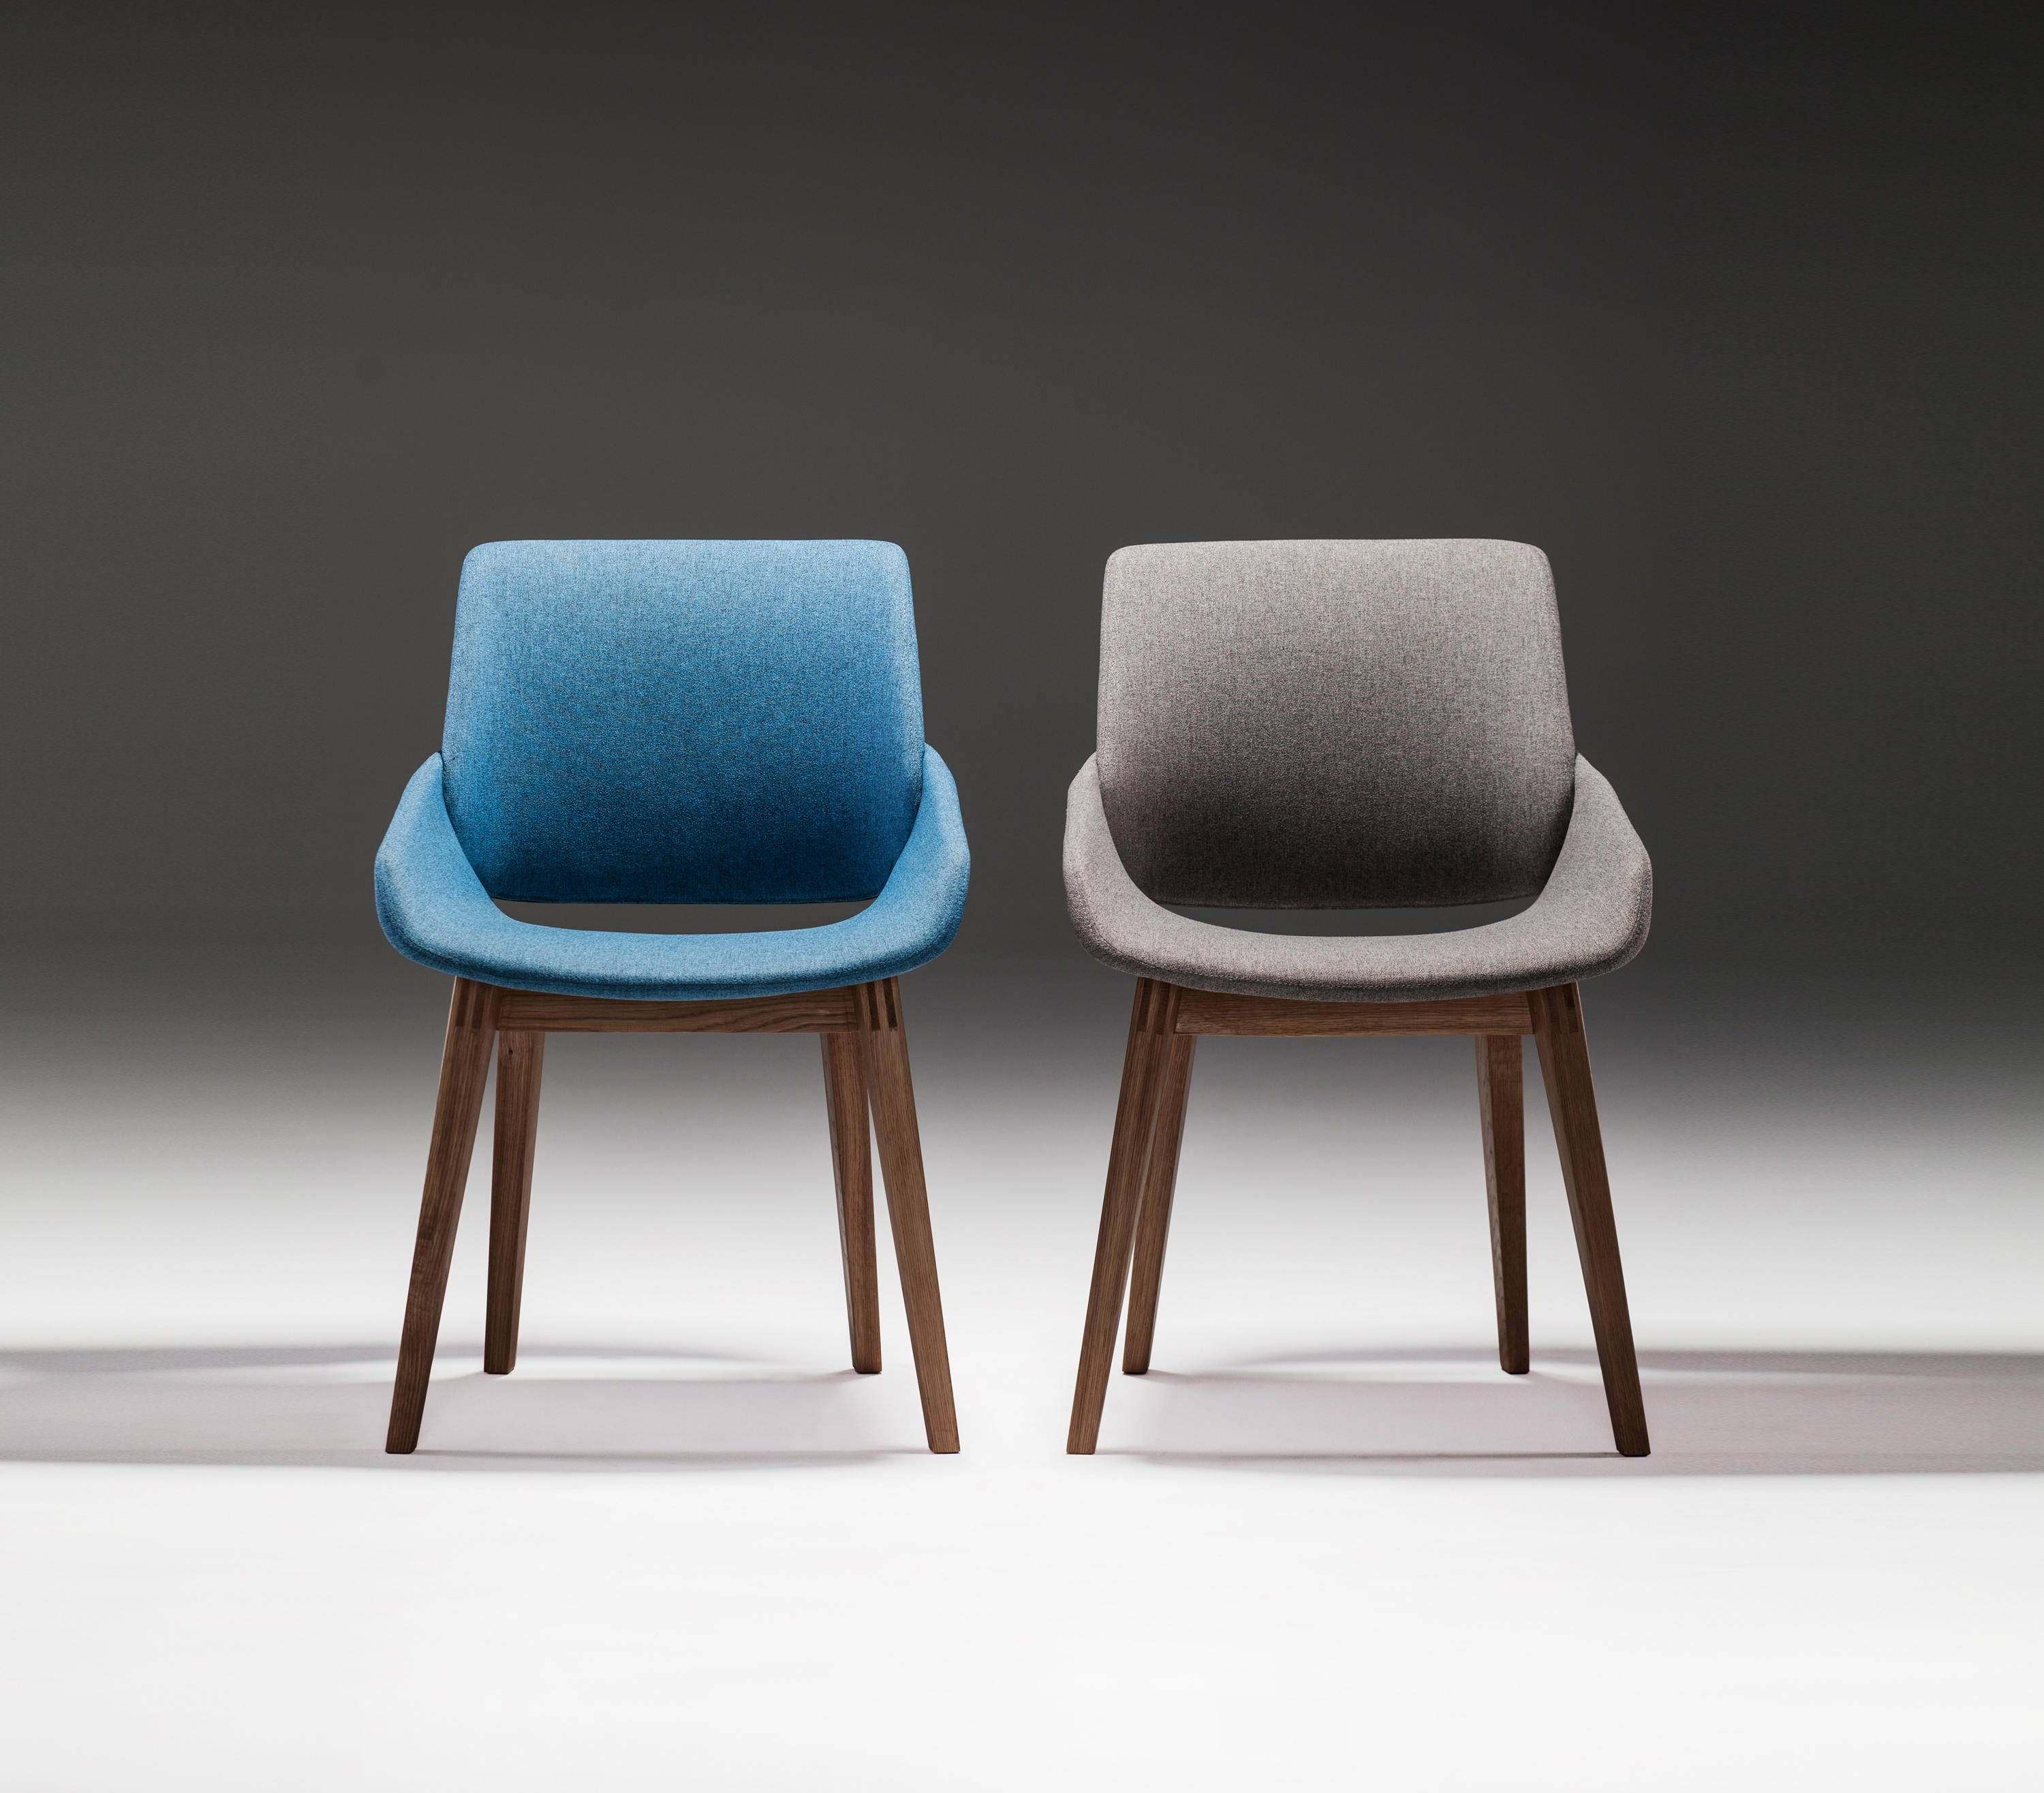 Monk Chair – Visitors Chairs / Side Chairs From Prostoria | Architonic With Regard To Monk Chairs (View 8 of 30)